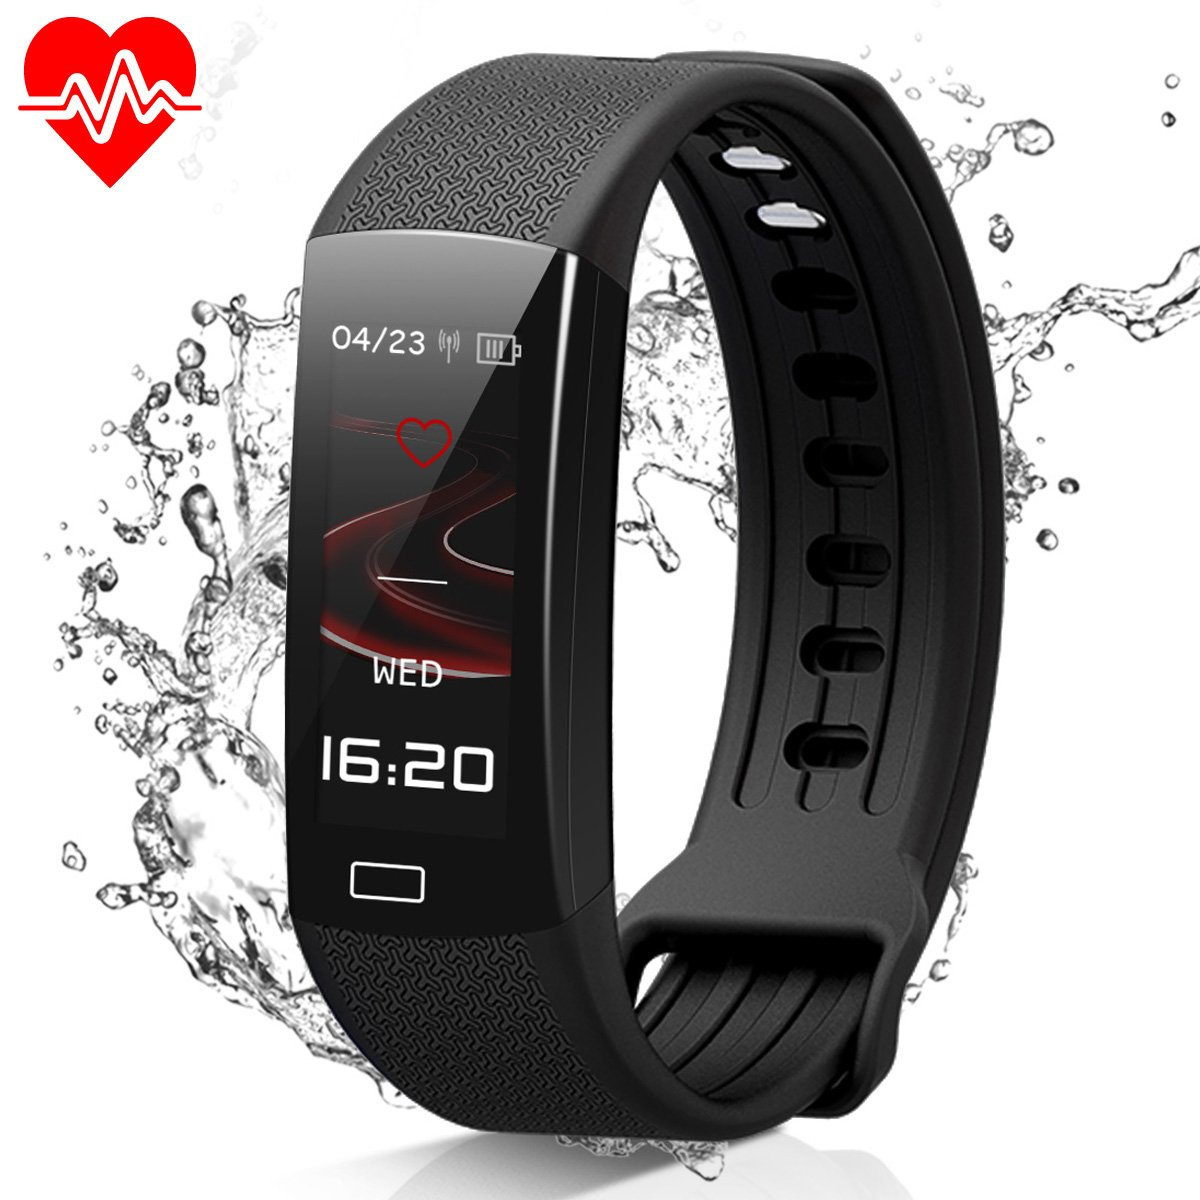 MOCRUX Fitness Tracker, Color Screen Smart Bracelet Activity Tracker with Heart Rate Monitor, IP67 Waterproof Smart Band with Sleep Monitor Calorie Counter Pedometer Sport Tracker for iOS/Android